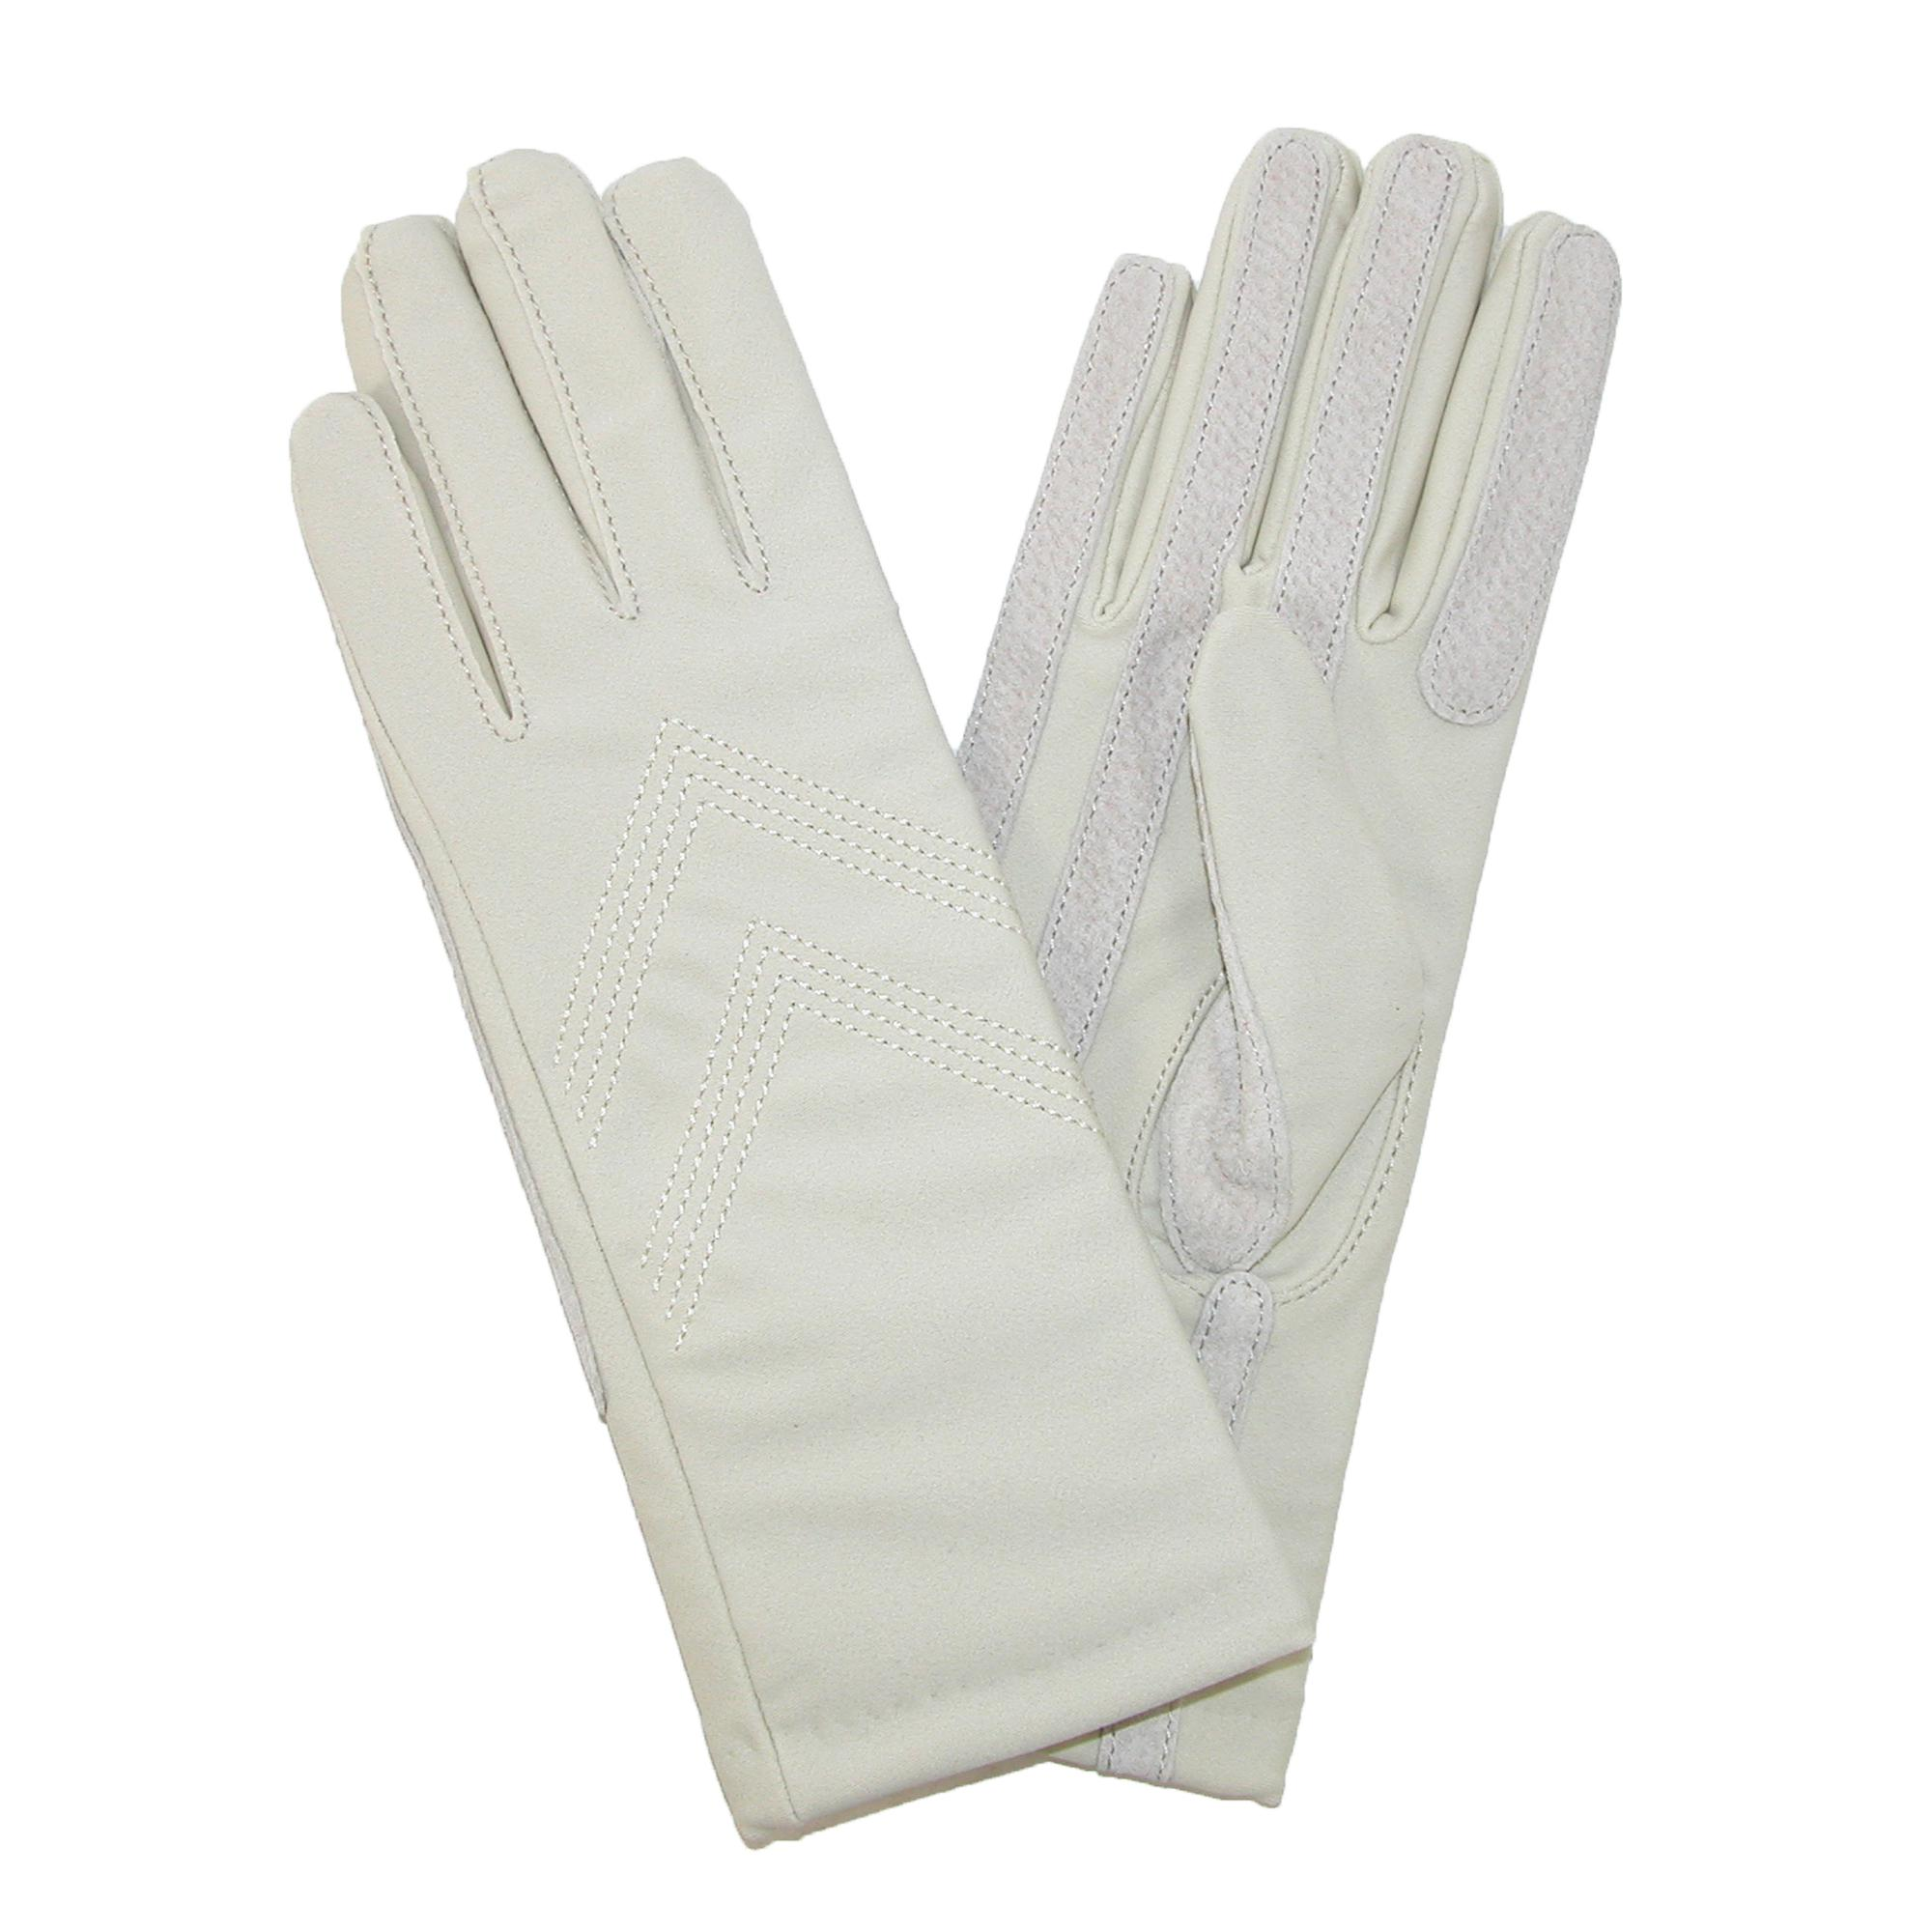 Isotoner womens leather gloves with fleece lining - Our Top Pick